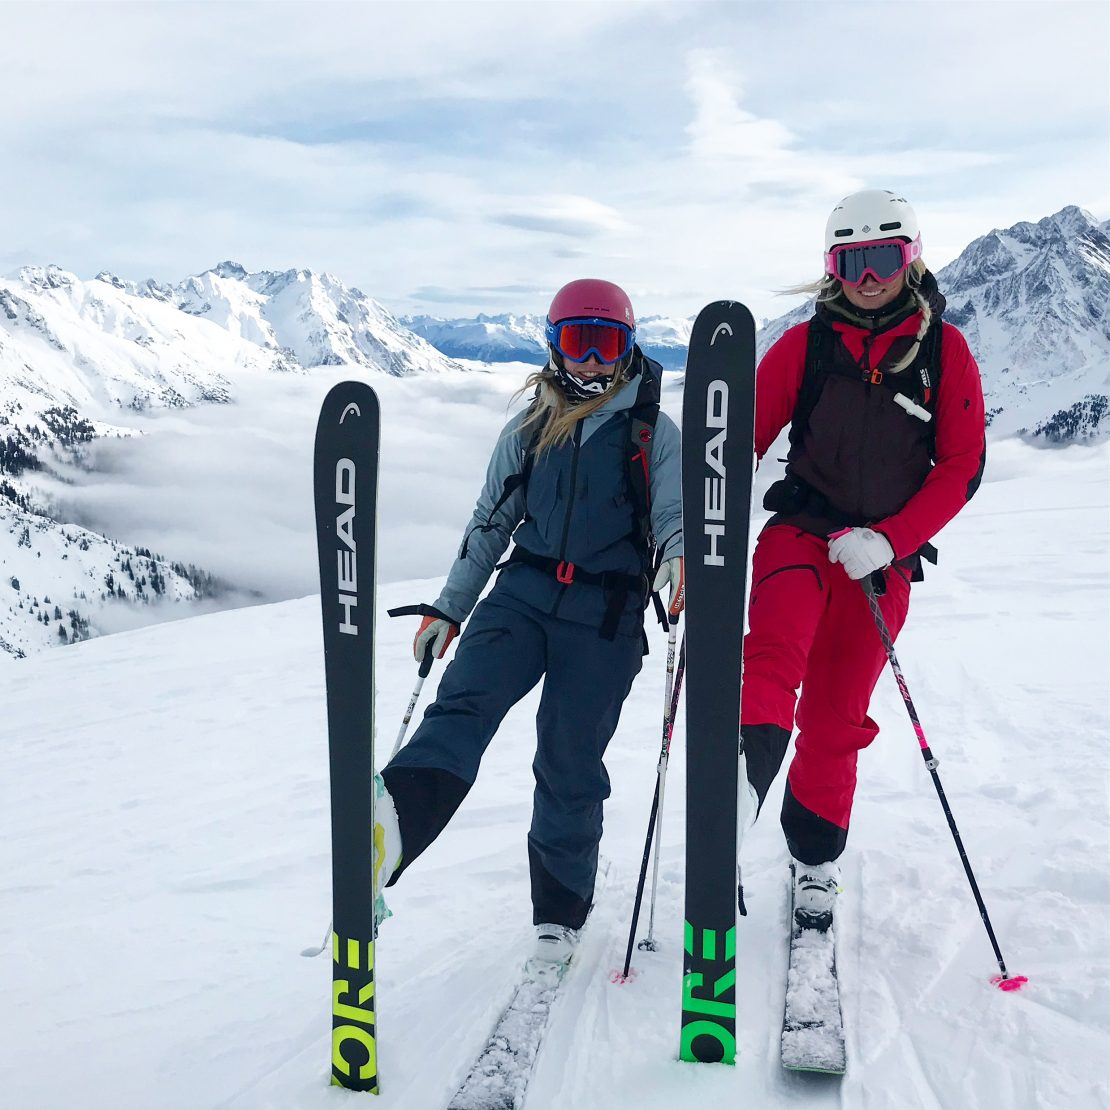 She & Ski skiing st. anton am arlberg